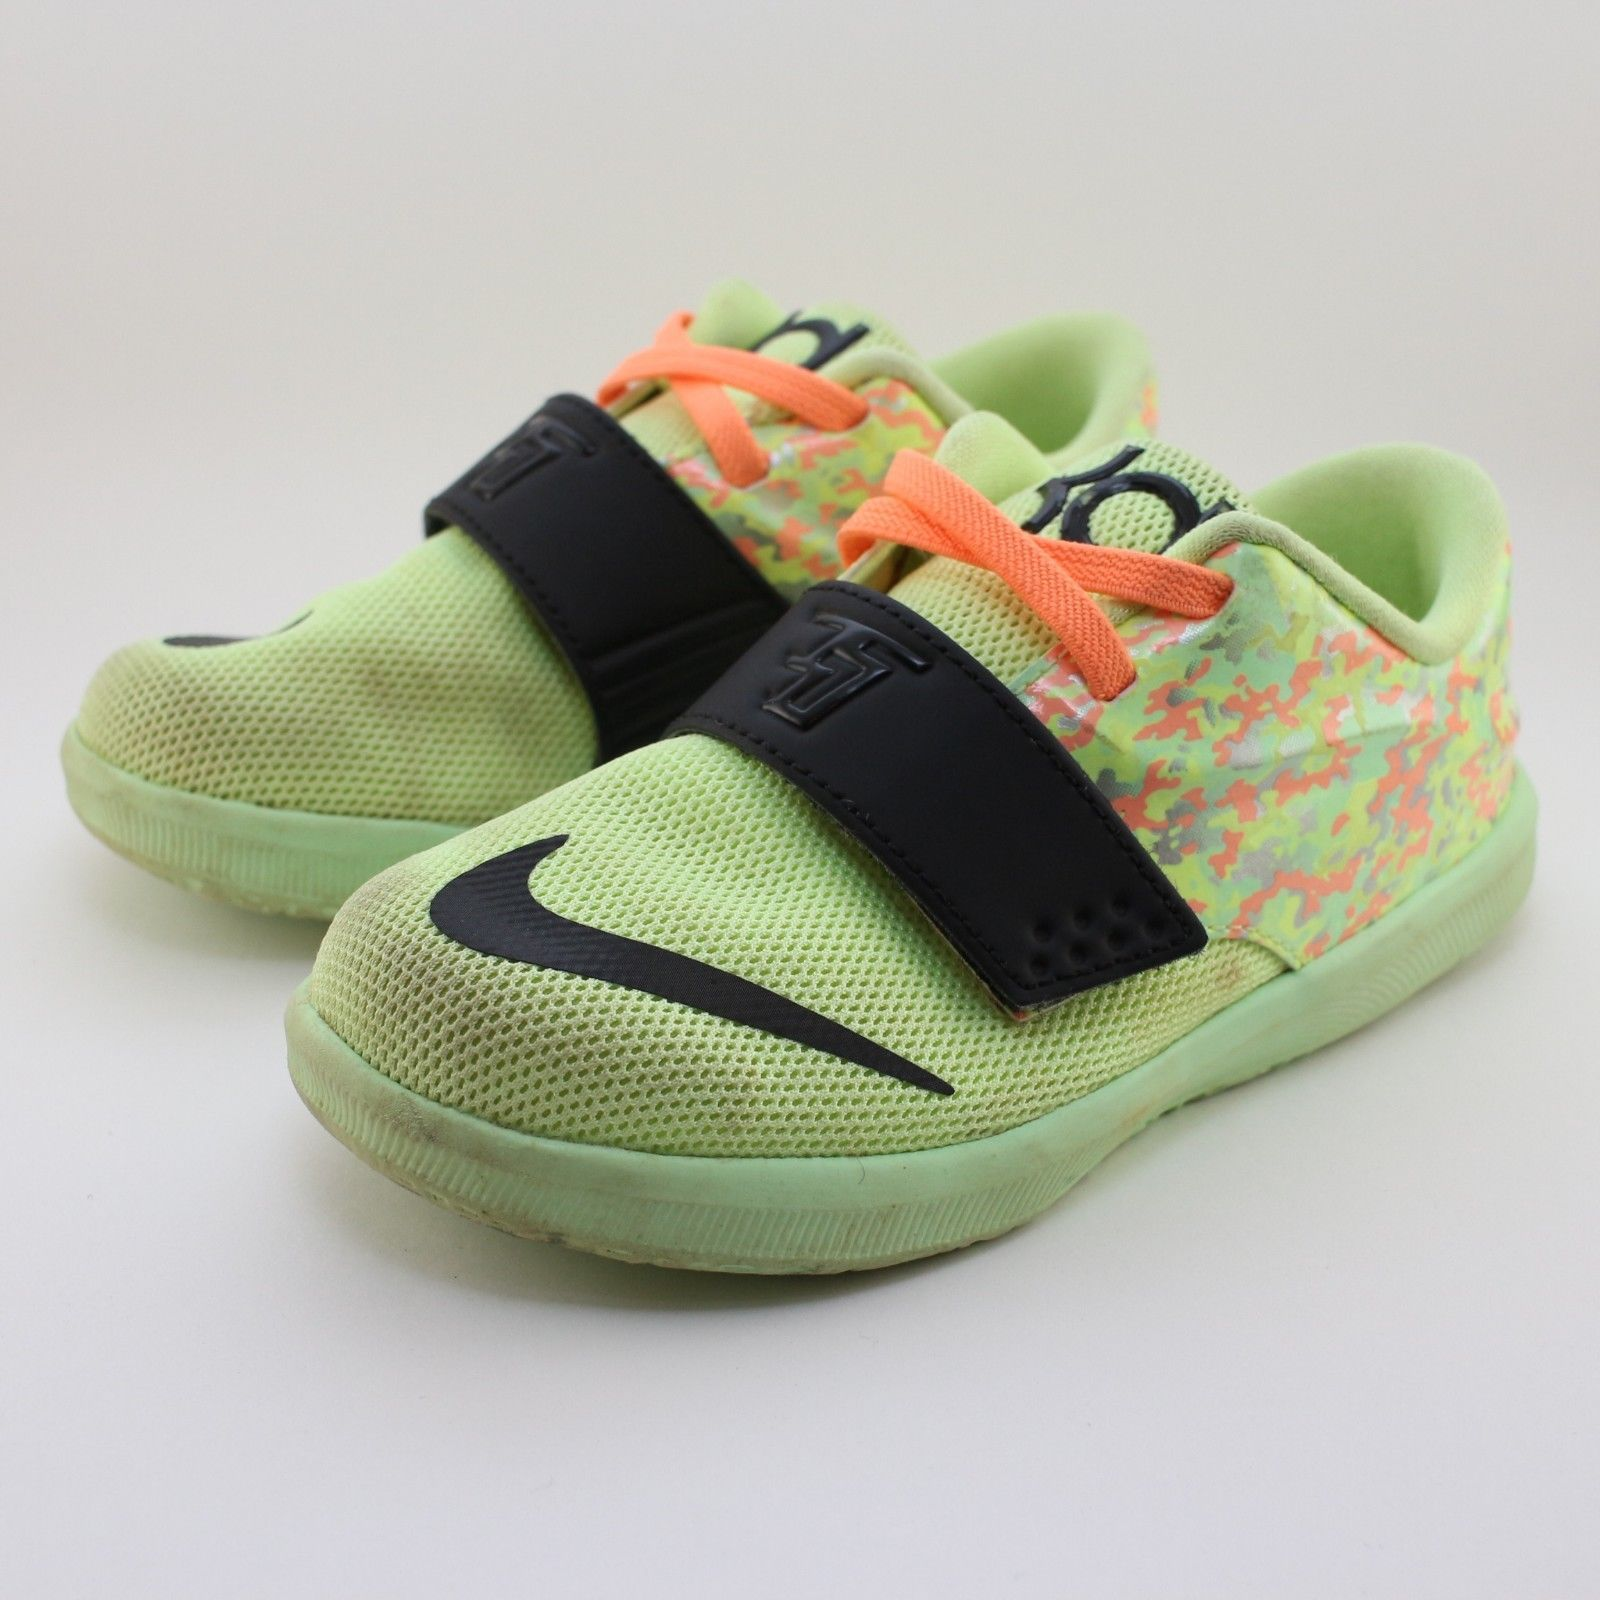 low priced cf9ab 7dbb6 ... official nike kevin durant kd 7 easter lime black and 30 similar items.  57 be7ae